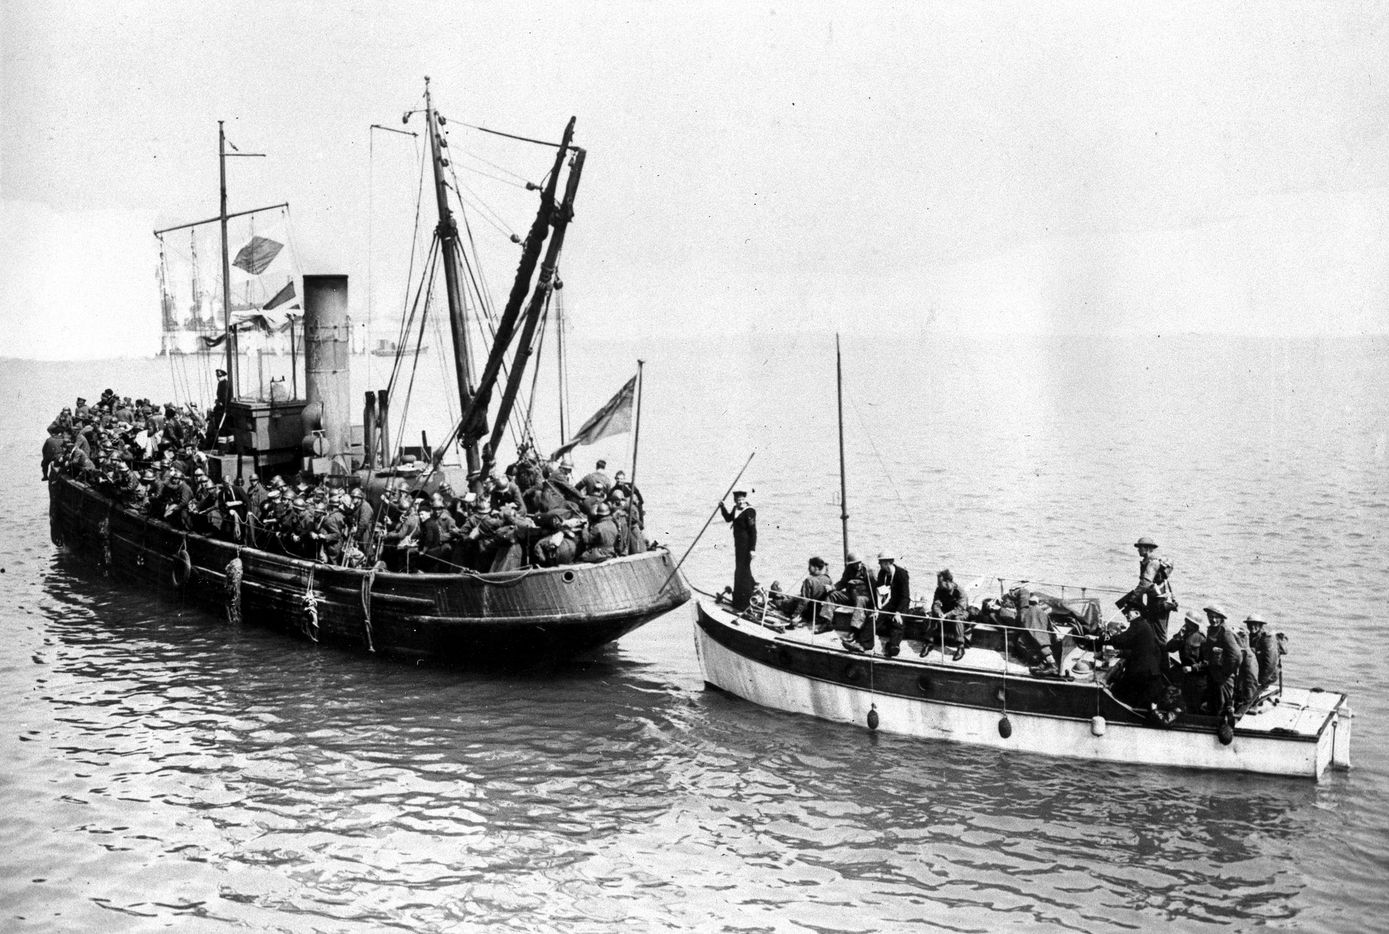 Two of the many small boats which helped to bring the Allied troops in the emergency evacuation across the English Channel from Dunkirk, France, are shown on June 4, 1940 in World War II.  Private crafts of all sizes, trawlers, paddle steamers, yachts and motor boats were used to evacuate more than 300,000 Allied troops who were cutoff from retreat on land by the Nazi invasion to the French Channel ports.